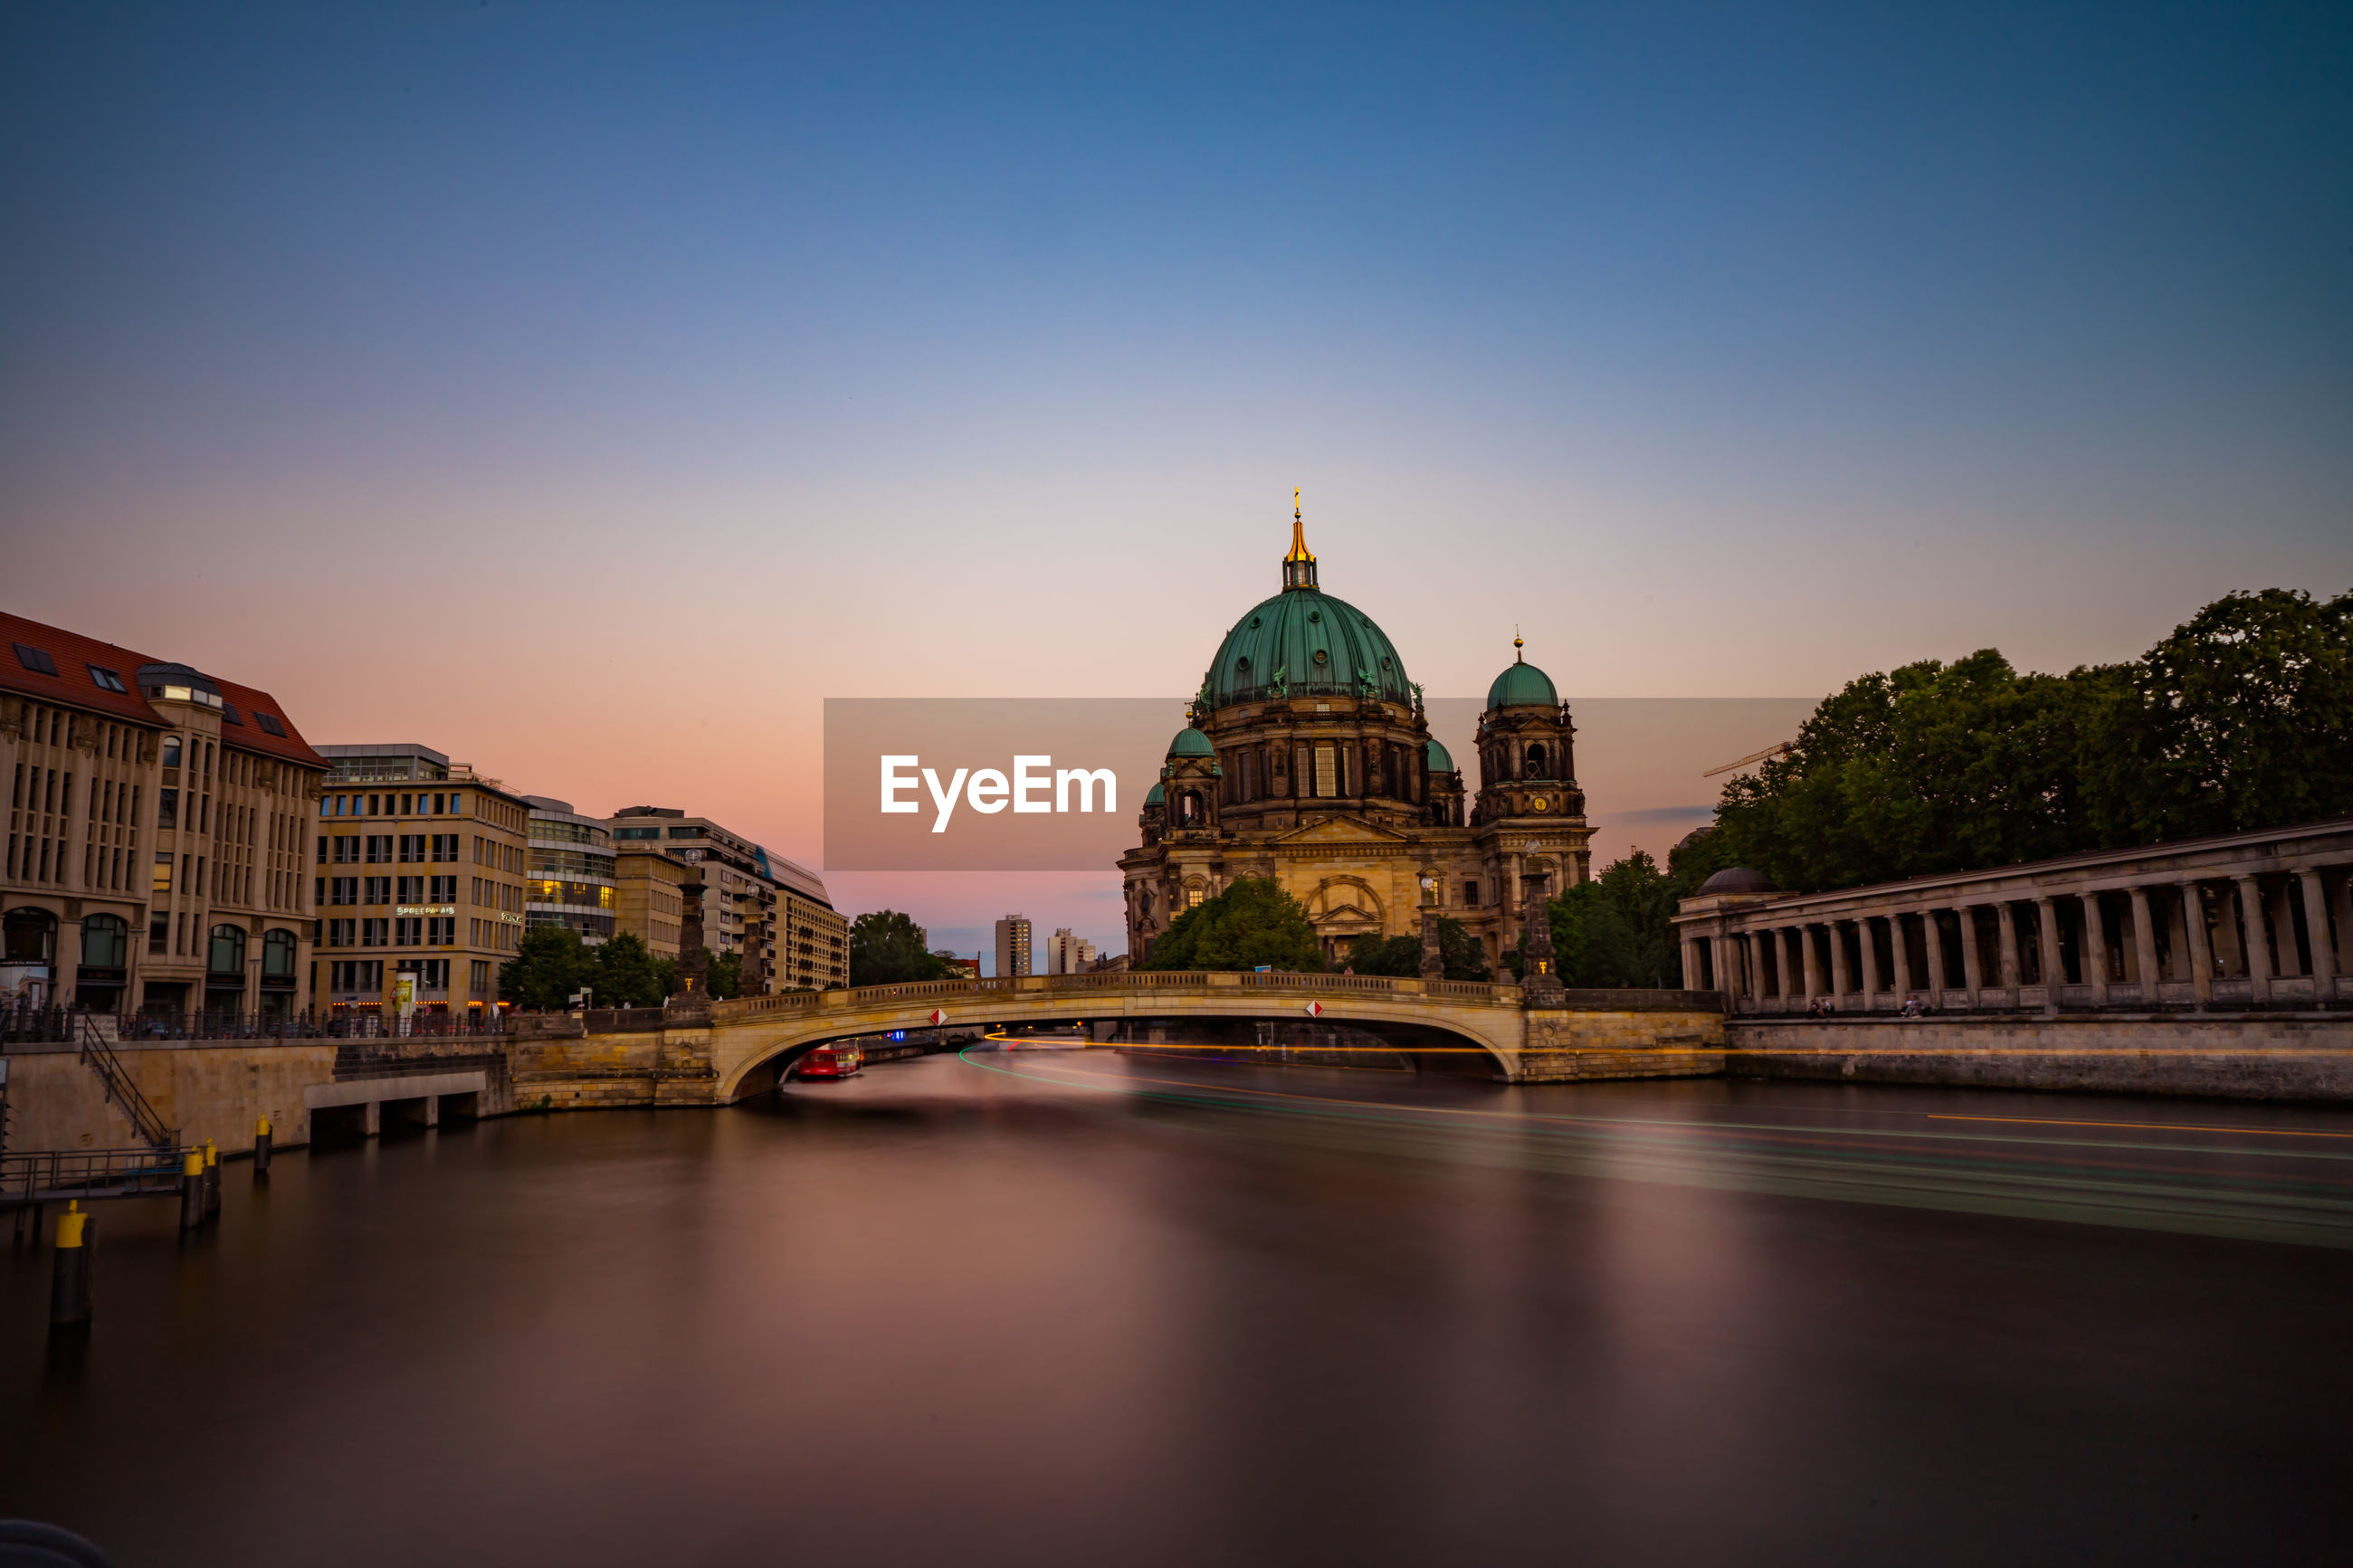 Light trail over river by berlin cathedral against clear sky during sunset